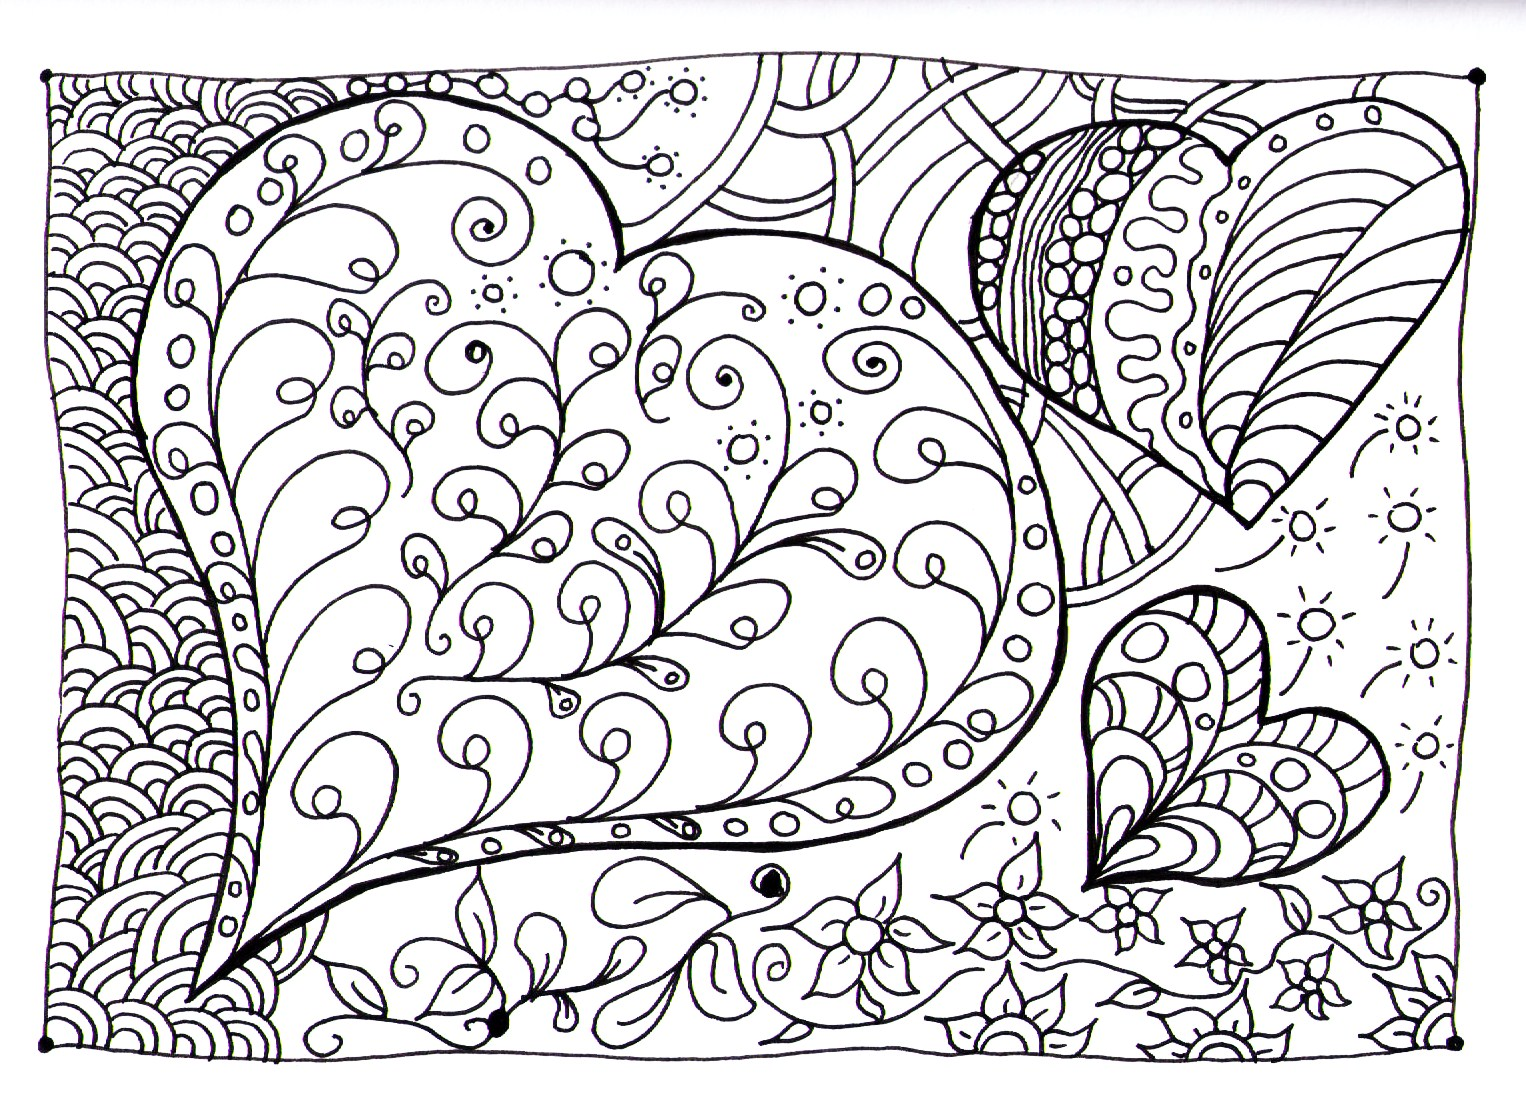 Coeur zen anti stress art th rapie coloriages - Coeur coloriage ...